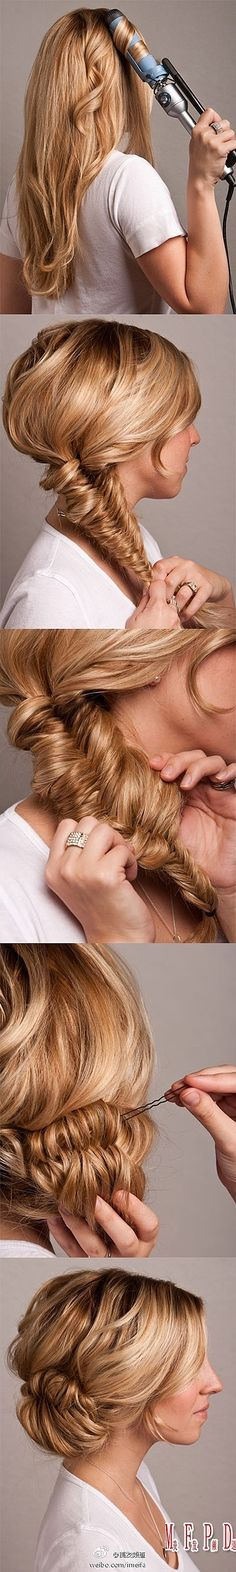 fish tail braid made easy with this great hair tutorial. Looks like you just need a curling iron and hair pins. My Hairstyle, Pretty Hairstyles, Wedding Hairstyles, Wedding Updo, Homecoming Hairstyles, Hairstyle Ideas, Bun Hairstyles, Country Hairstyles, Mermaid Hairstyles